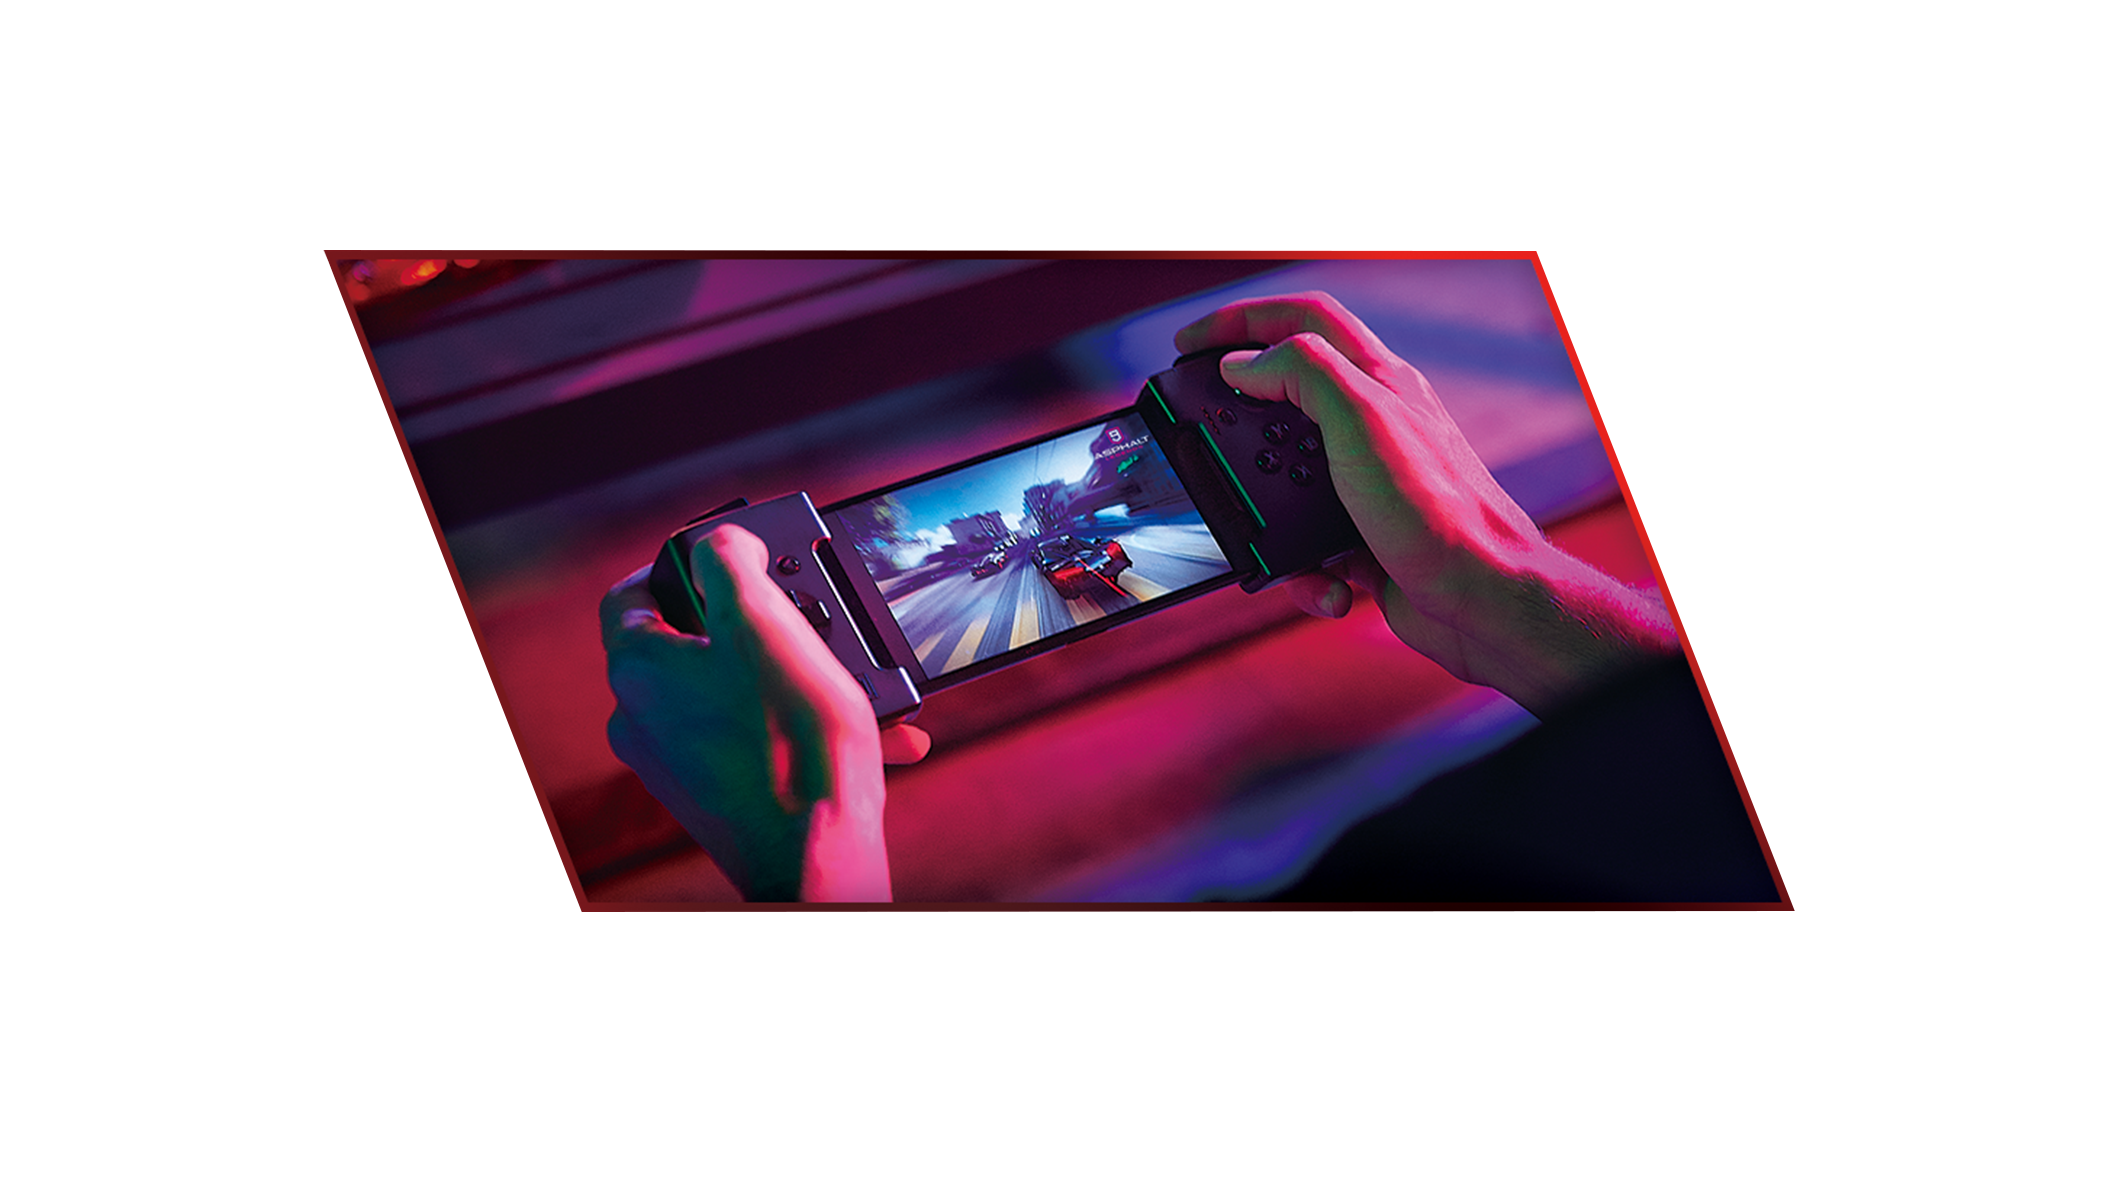 Asus ROG Game Vice Controller being played